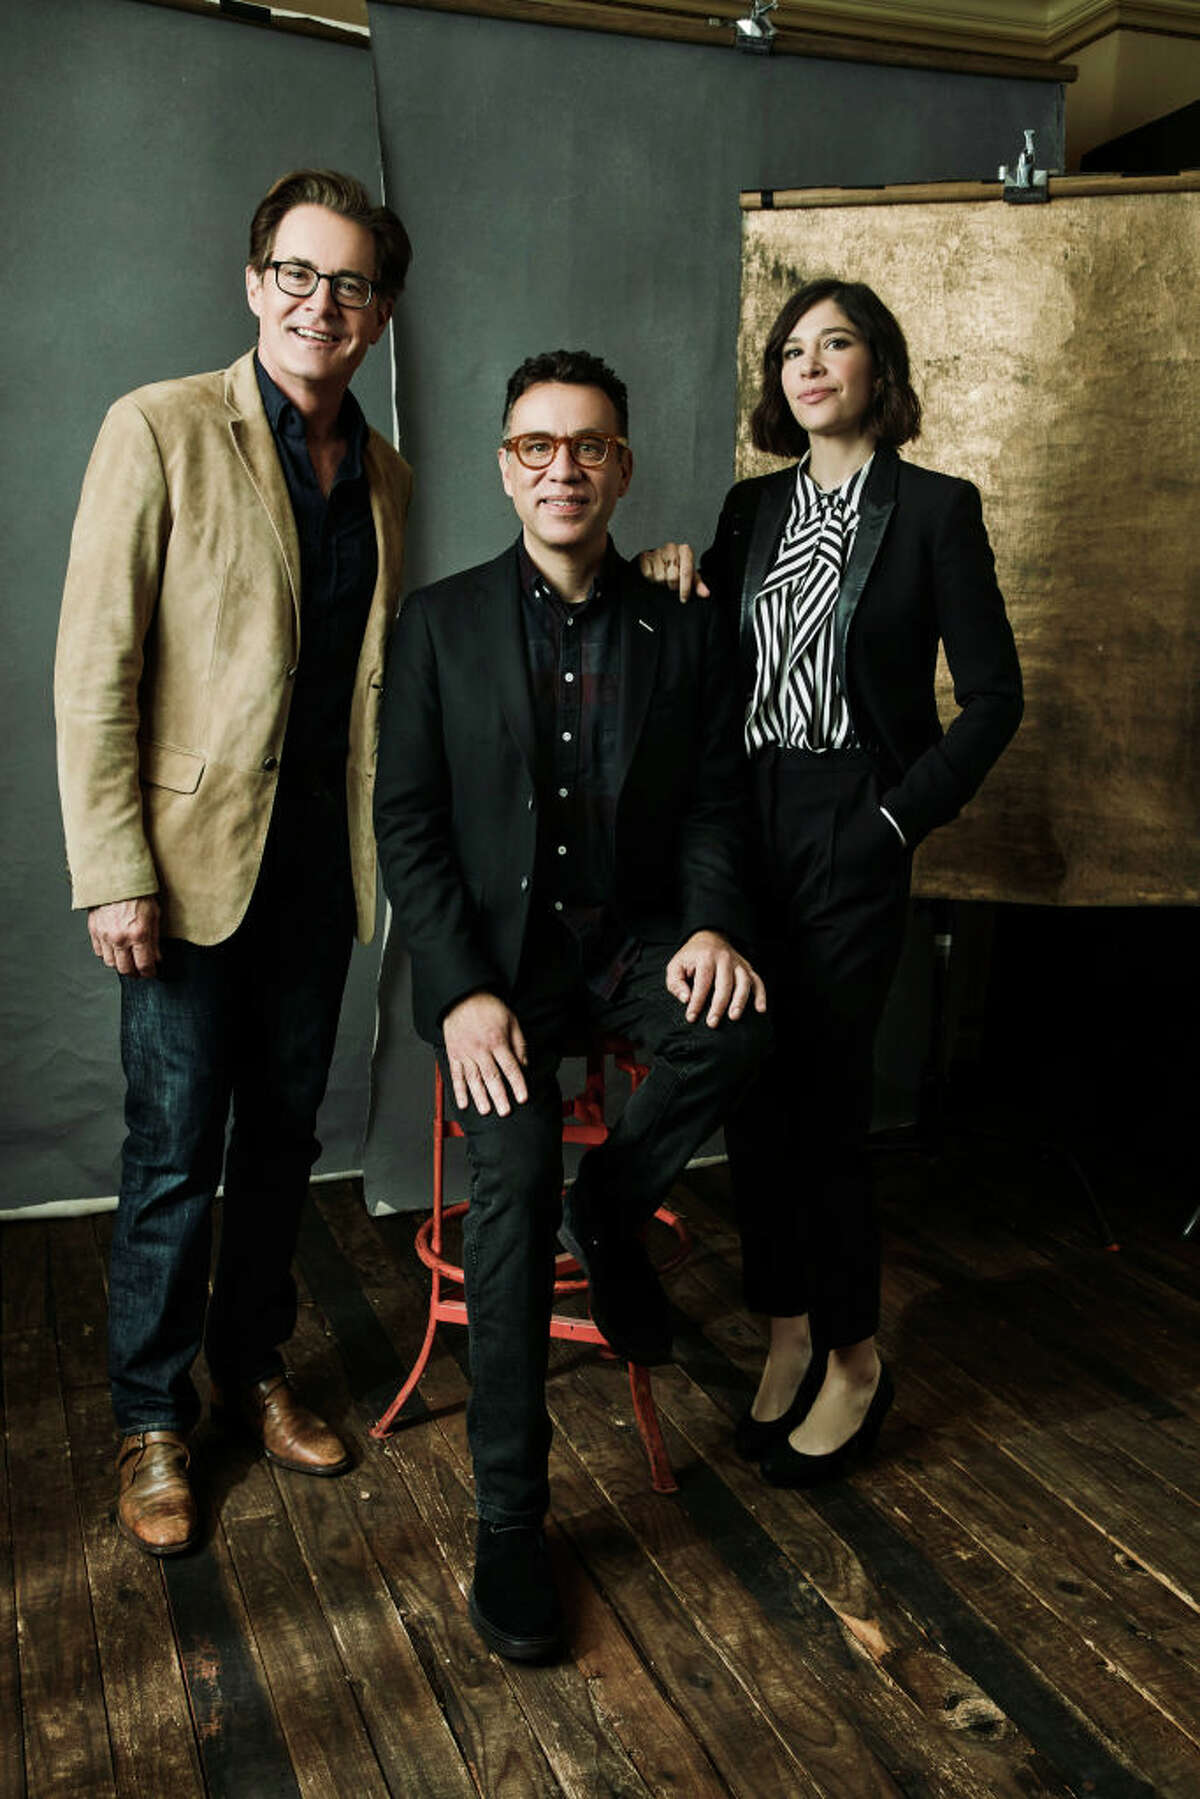 PASADENA, CA - JANUARY 12: (EDITORS NOTE: Image has been processed using a digital filter) Kyle McLachlan, Fred Armisen and Carrie Brownstein of IFC's 'Portlandia' pose for a portrait during the 2018 Winter TCA Tour at Langham Hotel on January 12, 2018 in Pasadena, California. (Photo by Maarten de Boer/Getty Images)